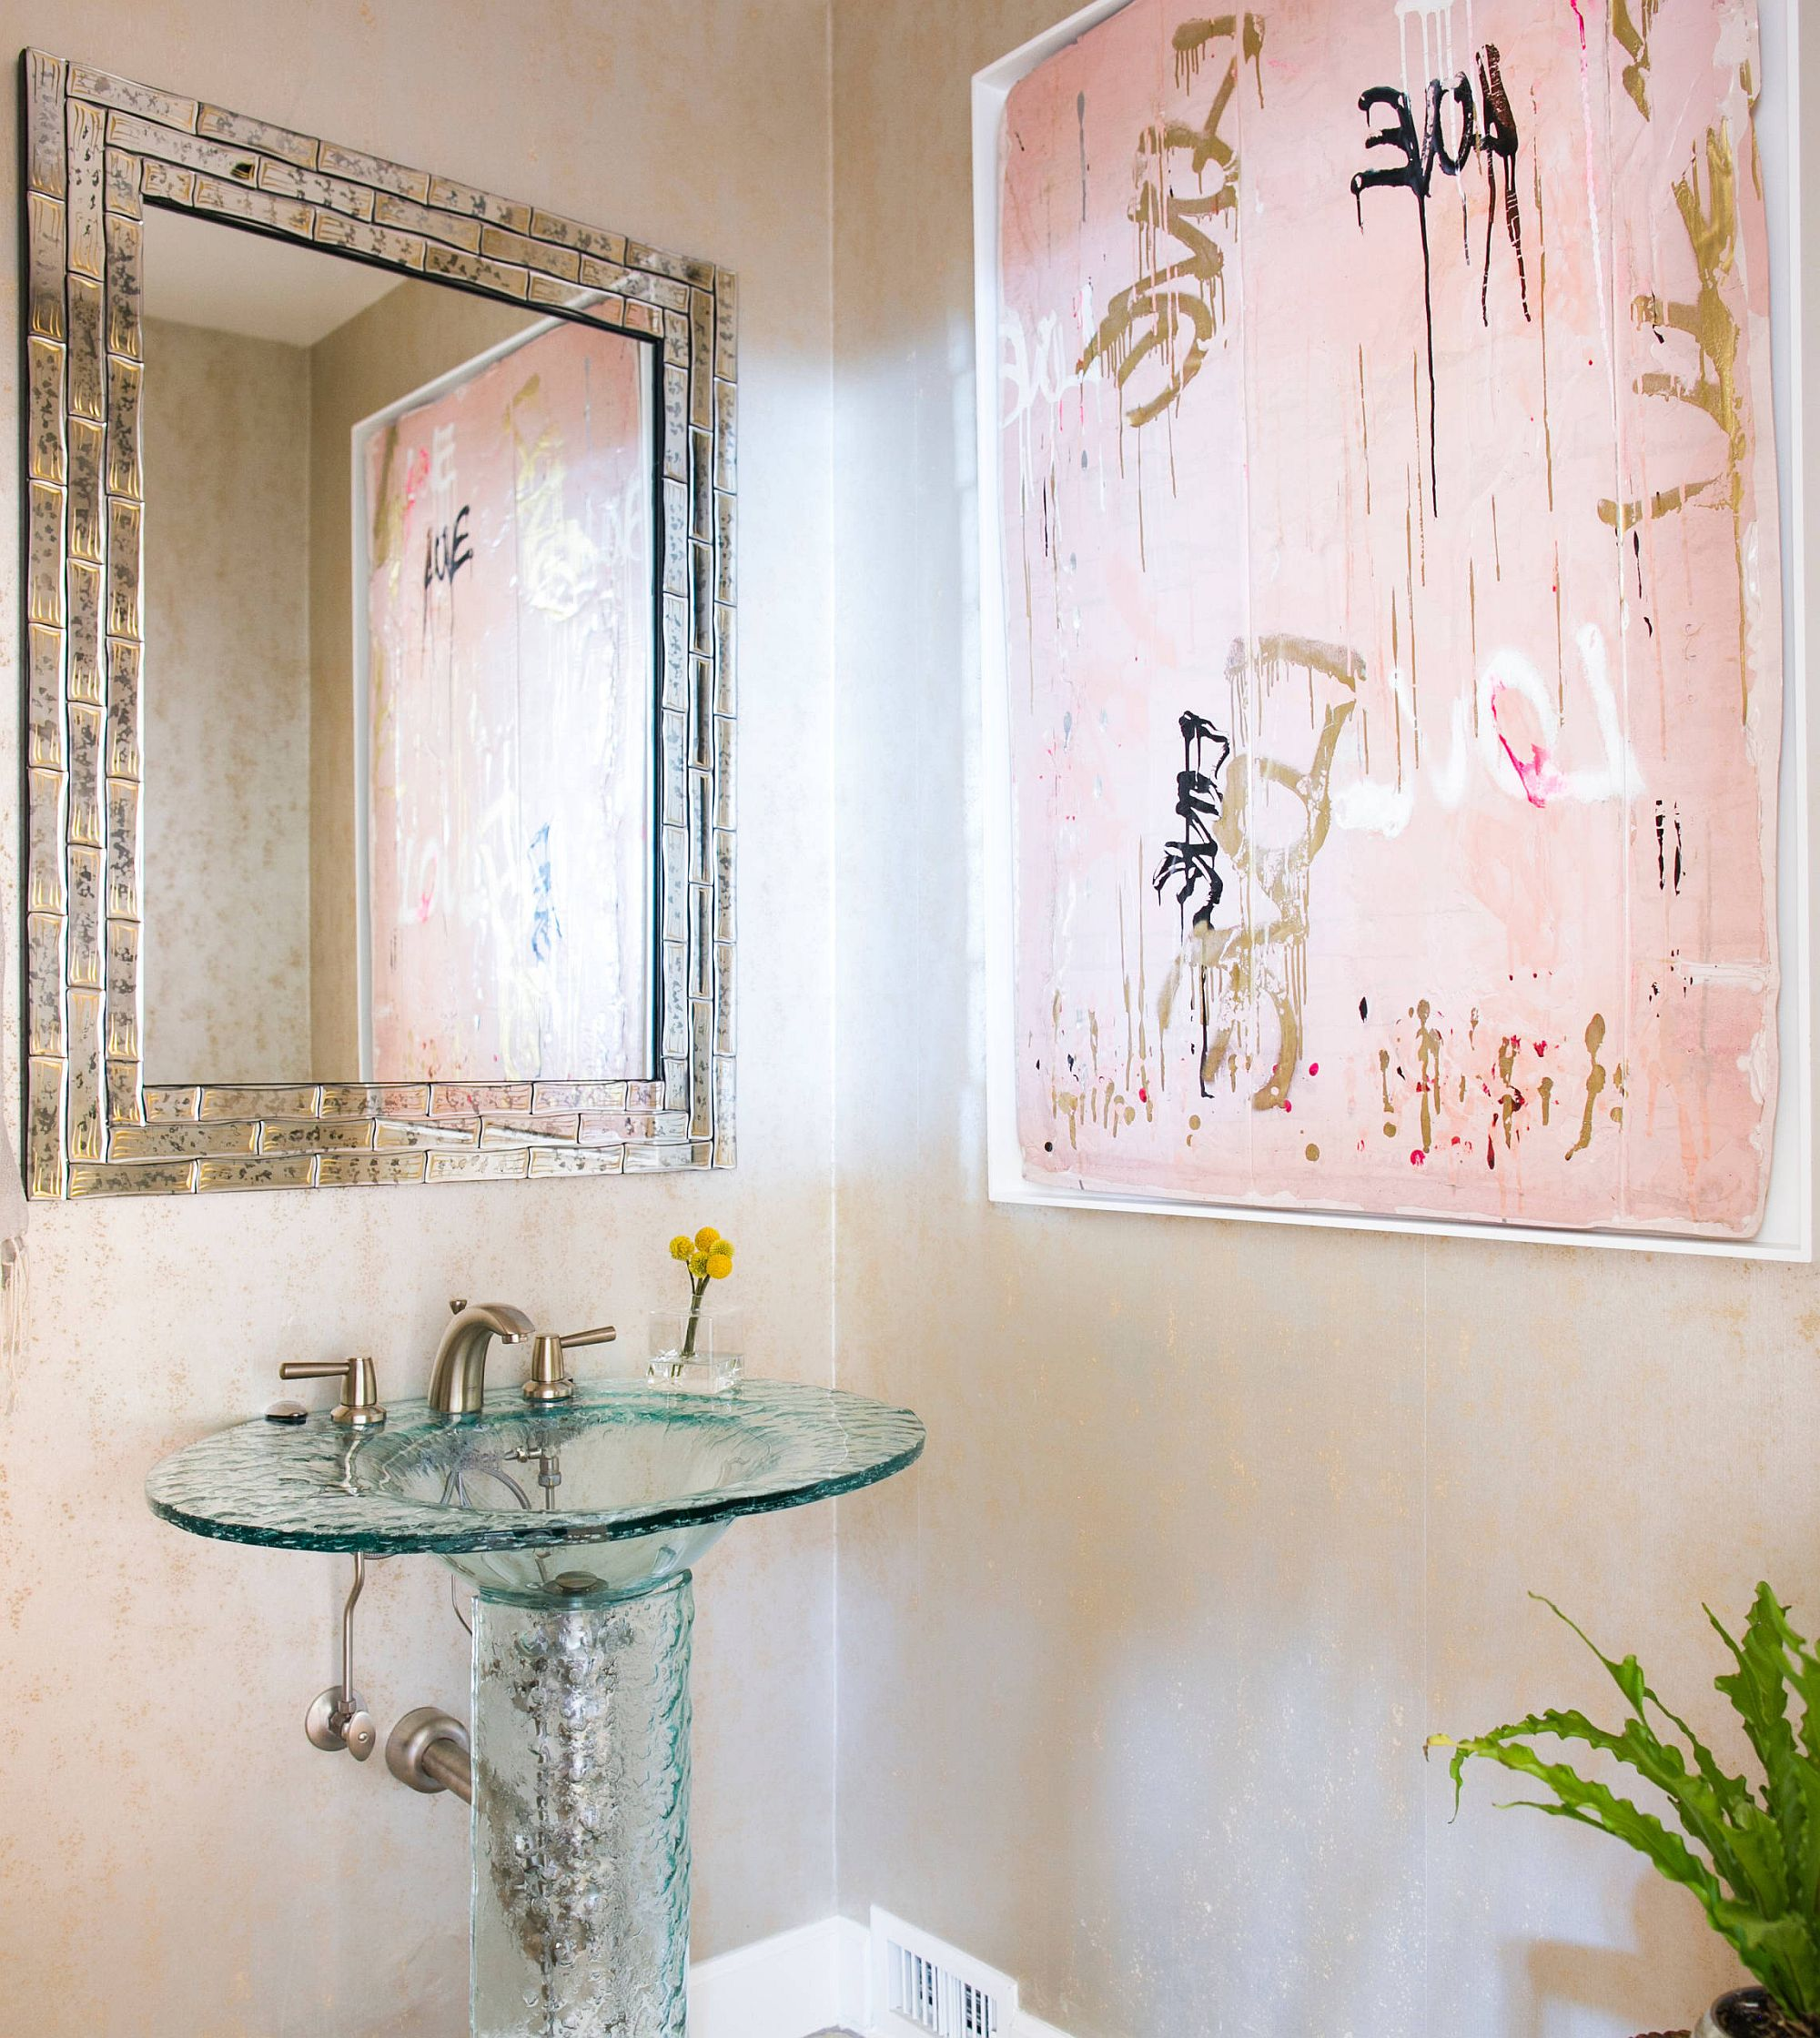 A-dash-of-pink-for-the-bathroom-in-neutral-hues-comes-with-lovely-wall-art-piece